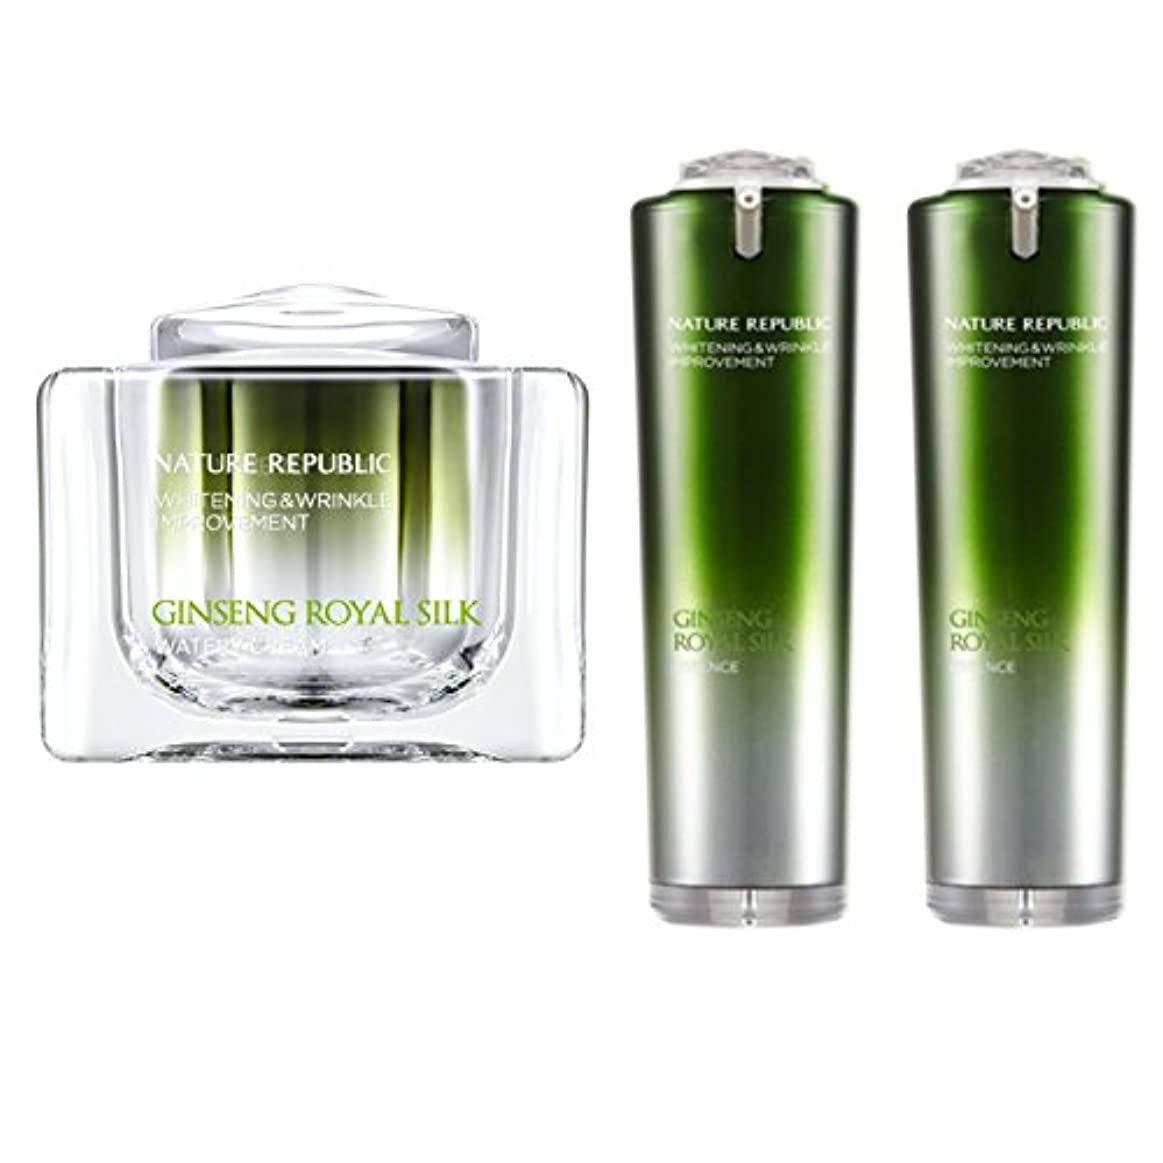 動物注釈団結[韓国 Nature Republic] Nature Republic Ginseng Royal Jelly Silk 水っぽいクリーム 60 Ml 1 エッセンス 40 Ml 2 セット ゴールドホワイトニングリンクルしっとり弾力性改善 (Nature Republic Ginseng Royal Jelly Silk Watery Cream 60 Ml 1 Essence 40 Ml 2 Set Gold Whitening Wrinkle Moist Elasticity Improvement) (クリーム 60 Ml 1 + エッセンス 40 Ml 2) [並行輸入品]